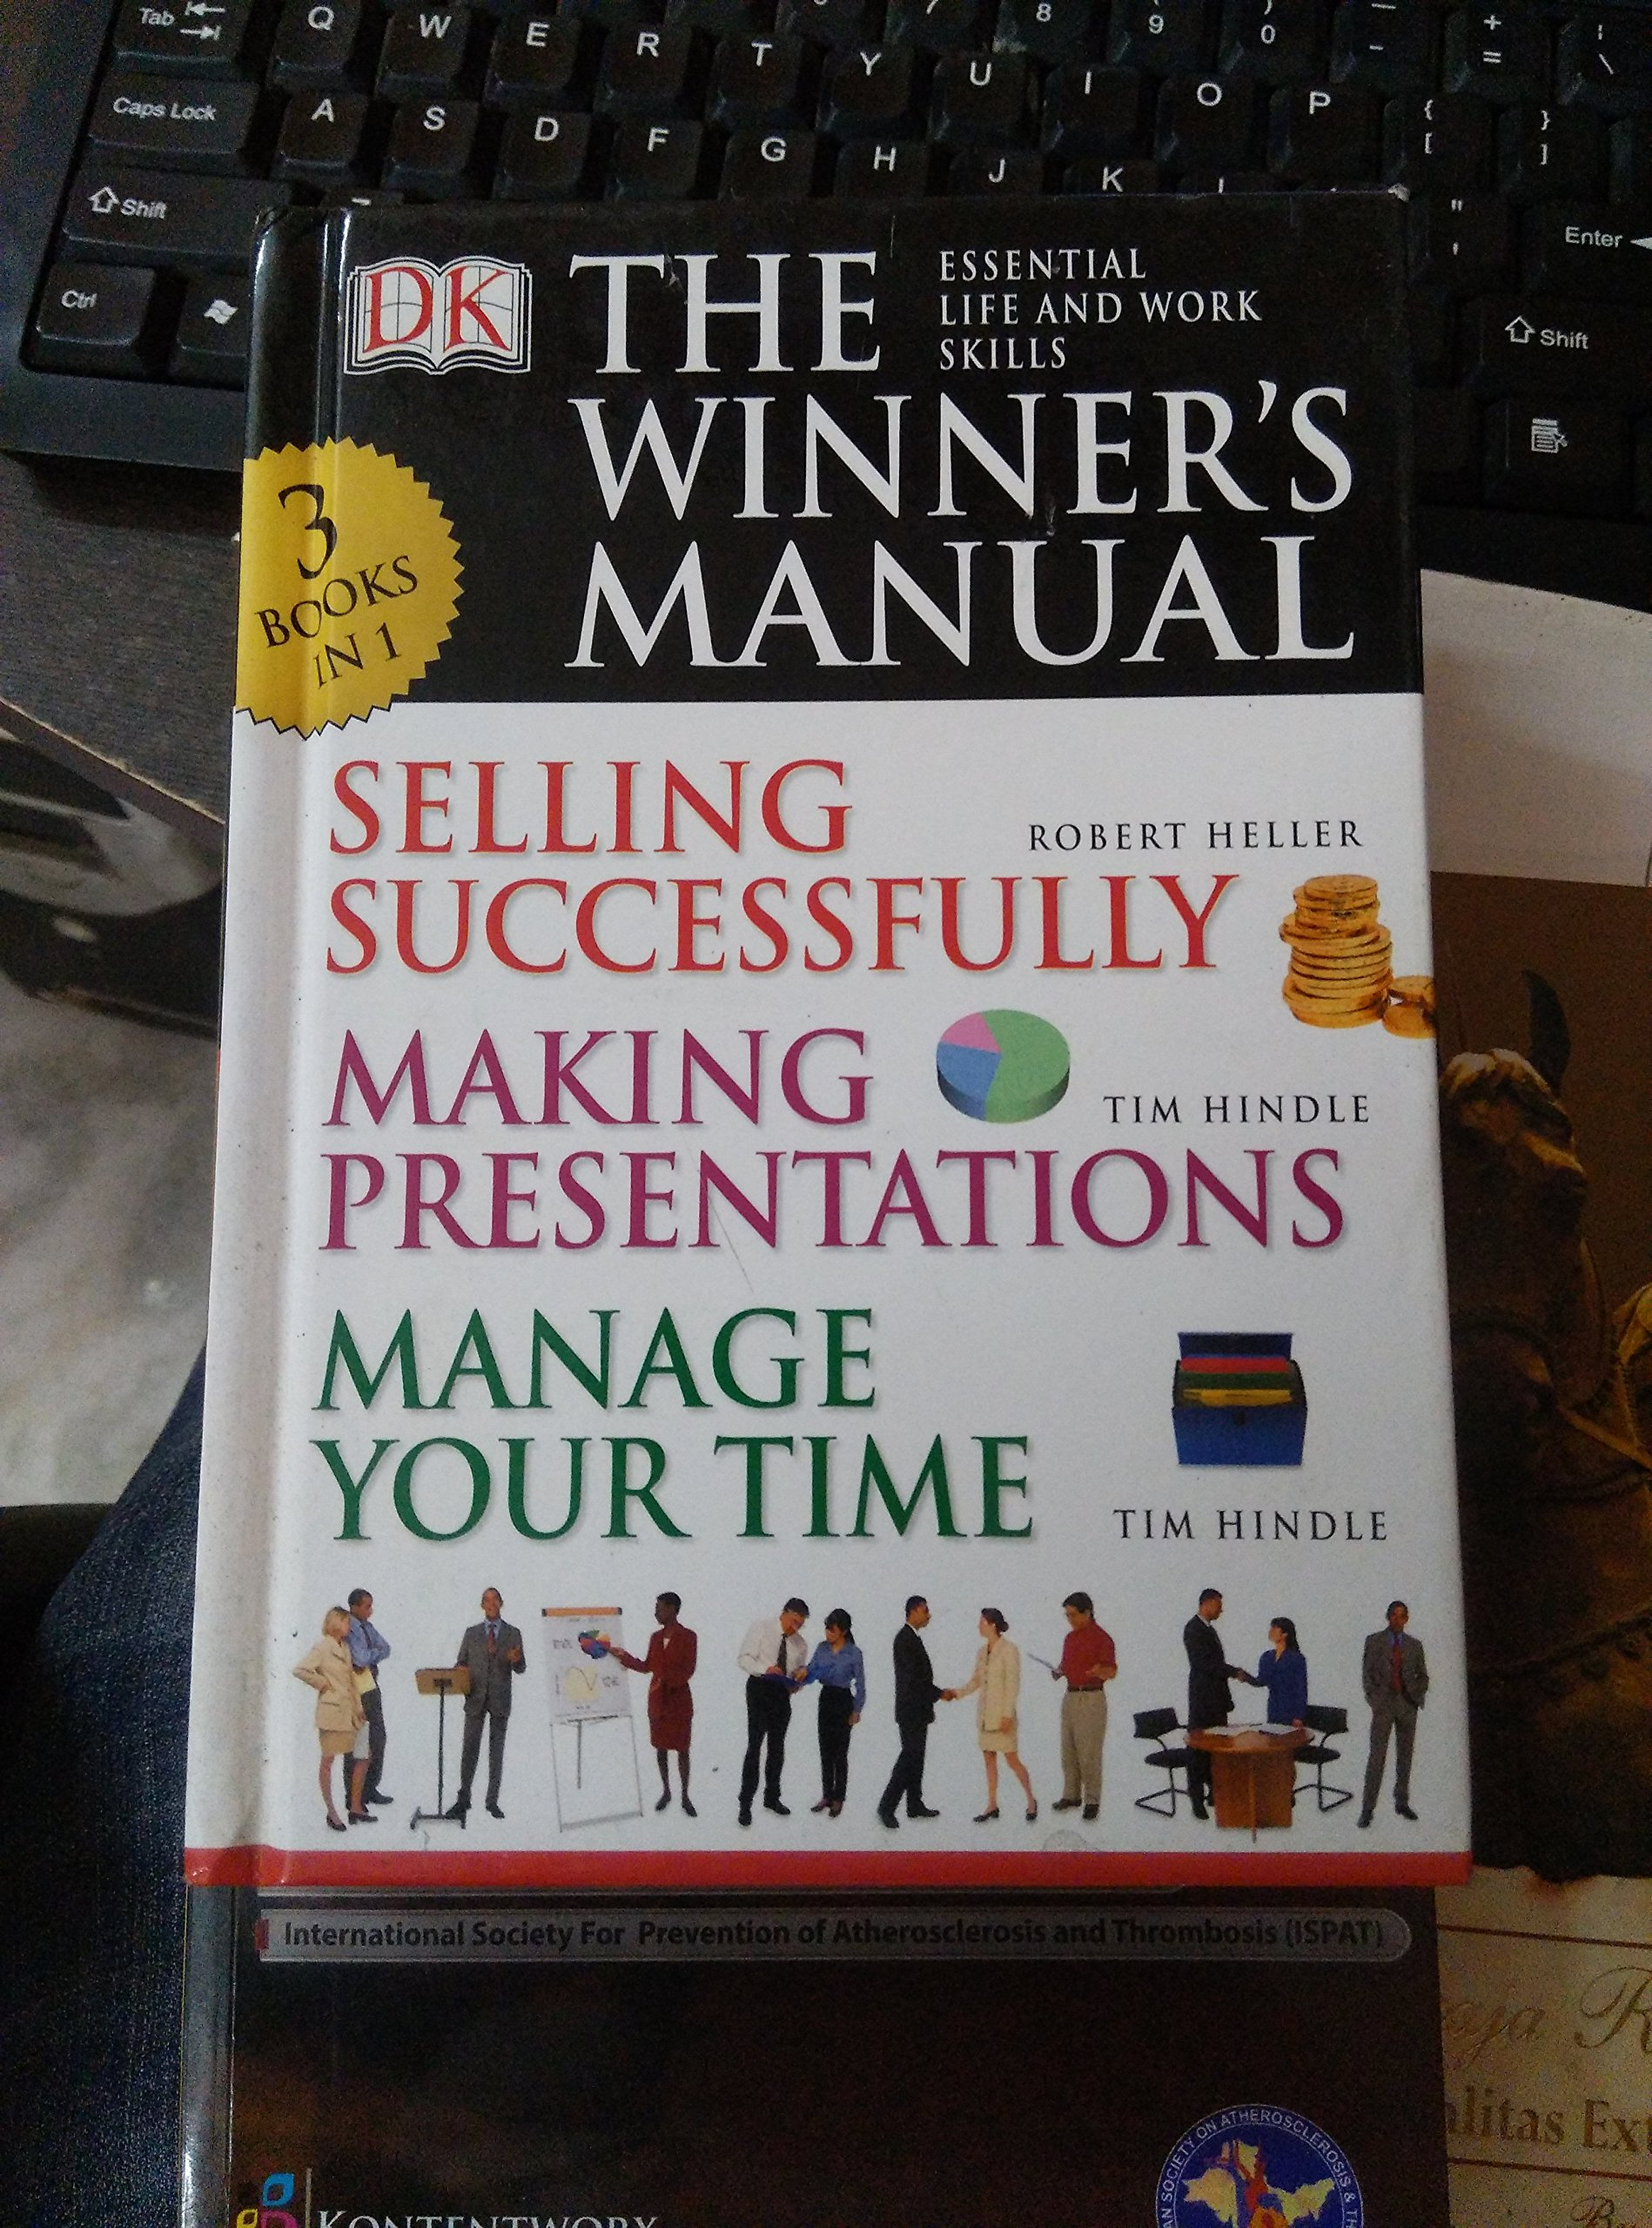 How to sell manual work